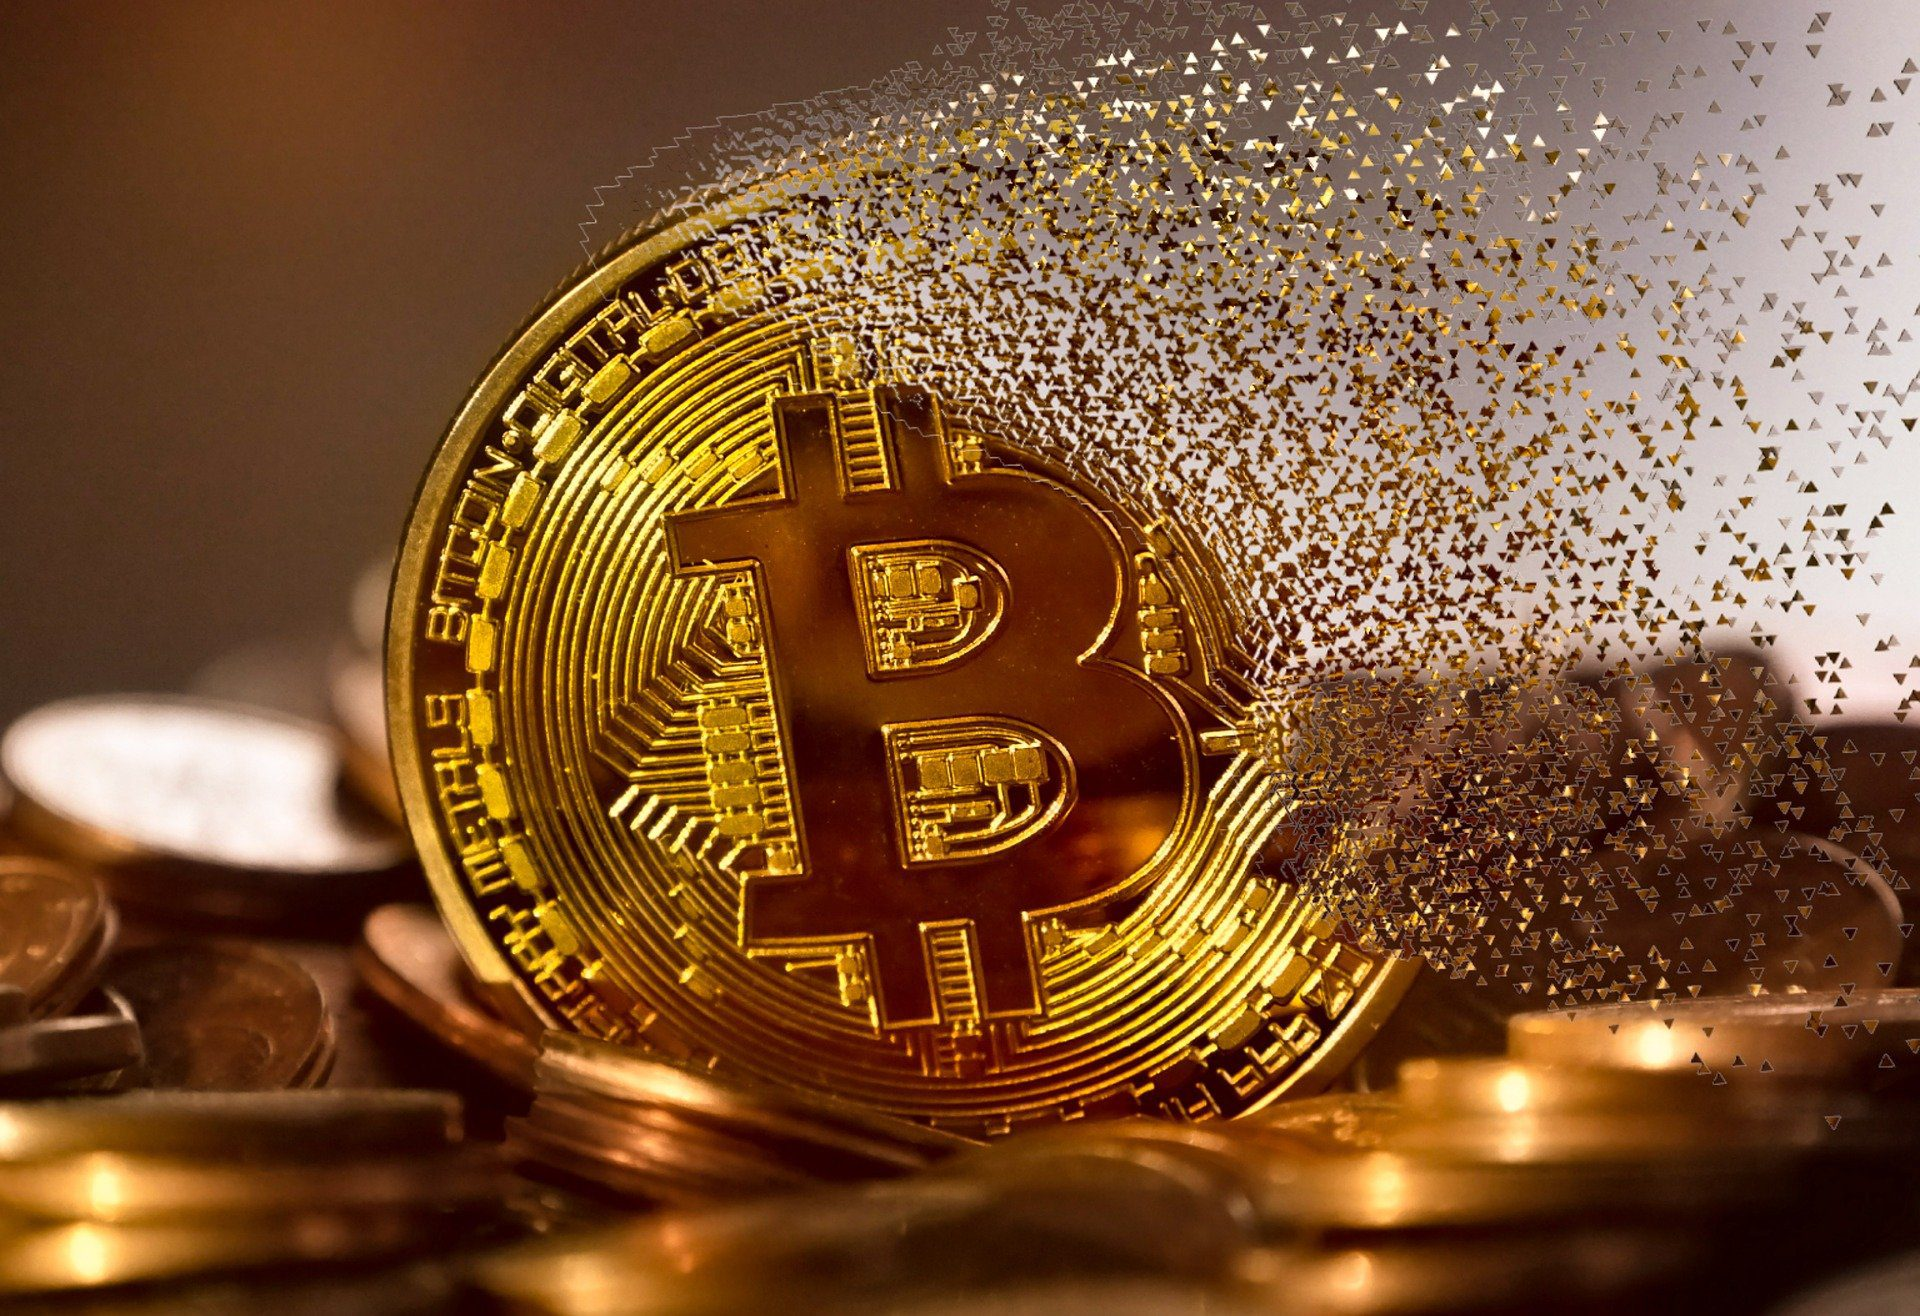 Should you buy Bitcoin now? Bitcoin Momentum continues to be +ve but AltCoins have the edge